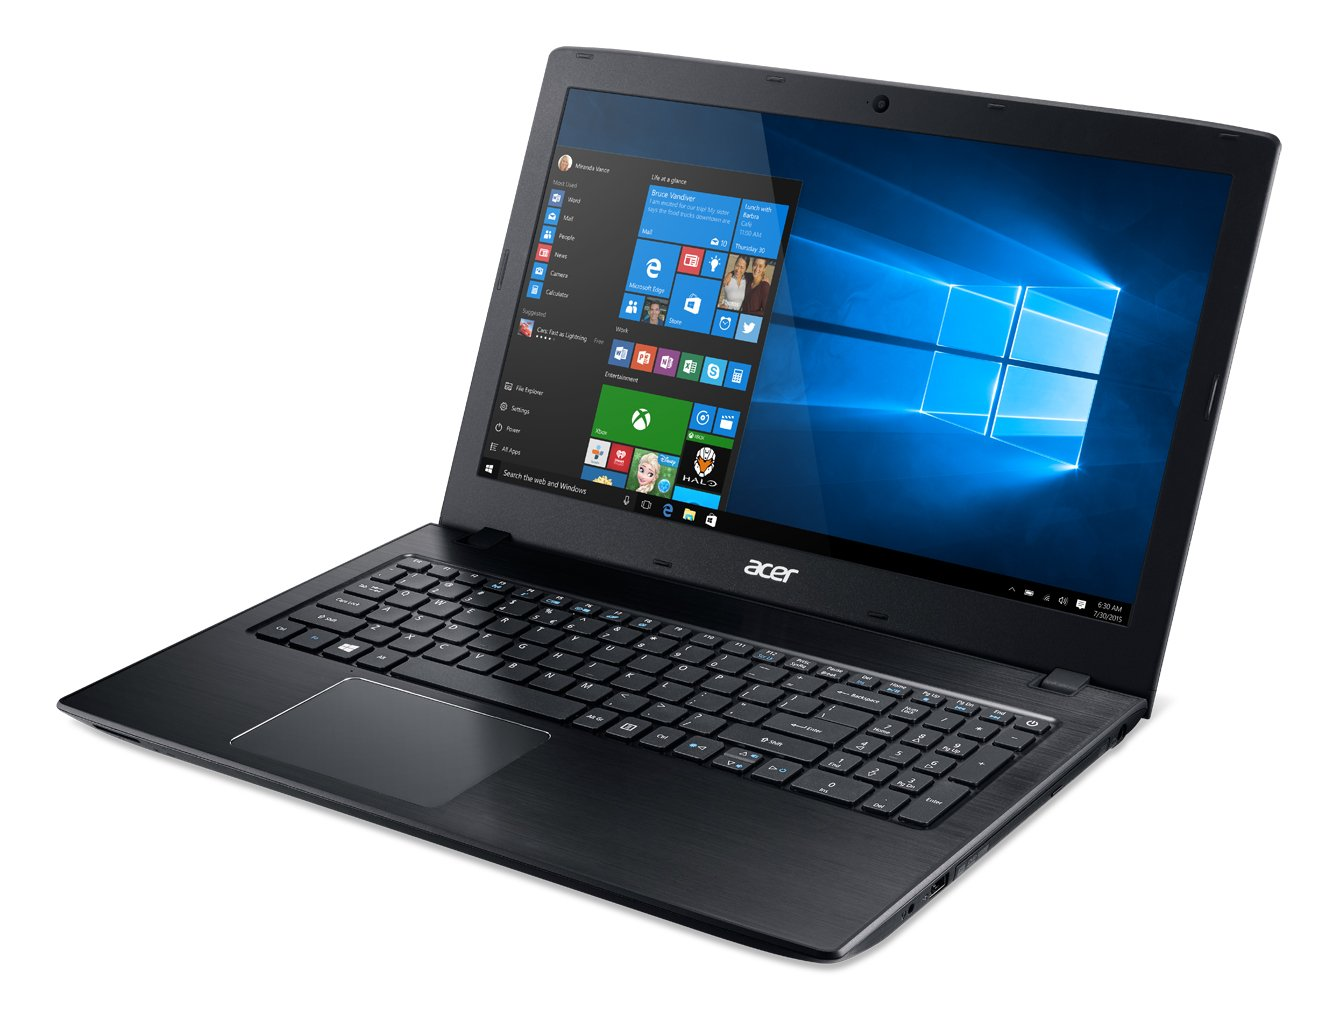 Acer Aspire E 15 E5-575G-57D4 15.6-Inches Full HD Notebook (7th Gen Intel Core i5-7200U, GeForce 940MX, 8GB DDR4 SDRAM, 256GB SSD, Windows 10 Home), Obsidian Black by Acer (Image #5)